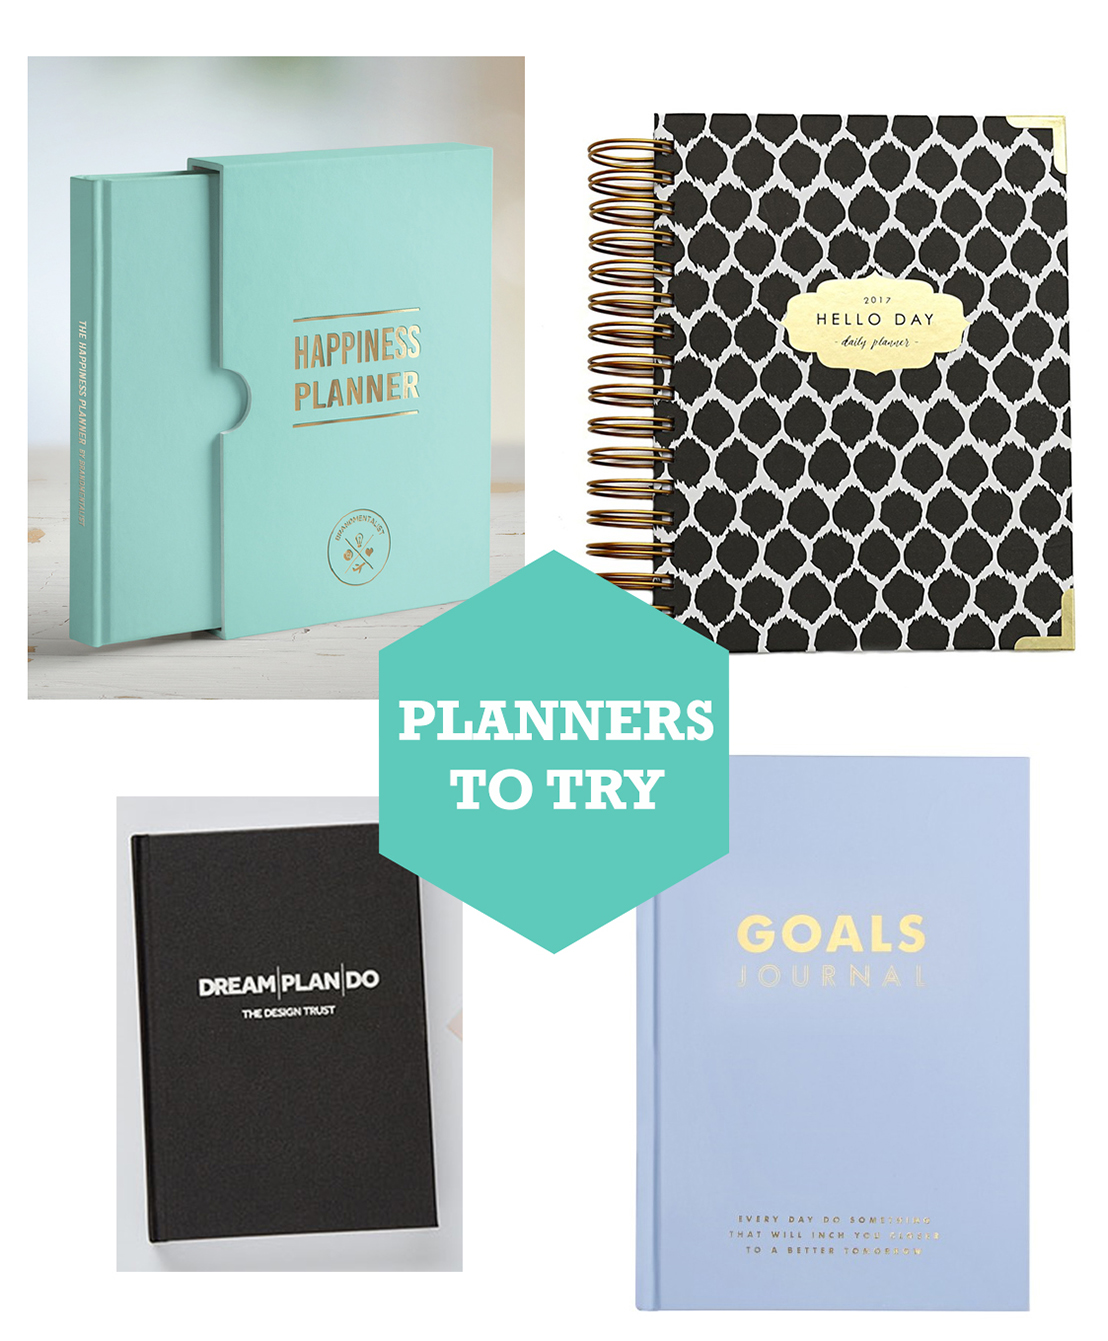 Planners to try for 2017